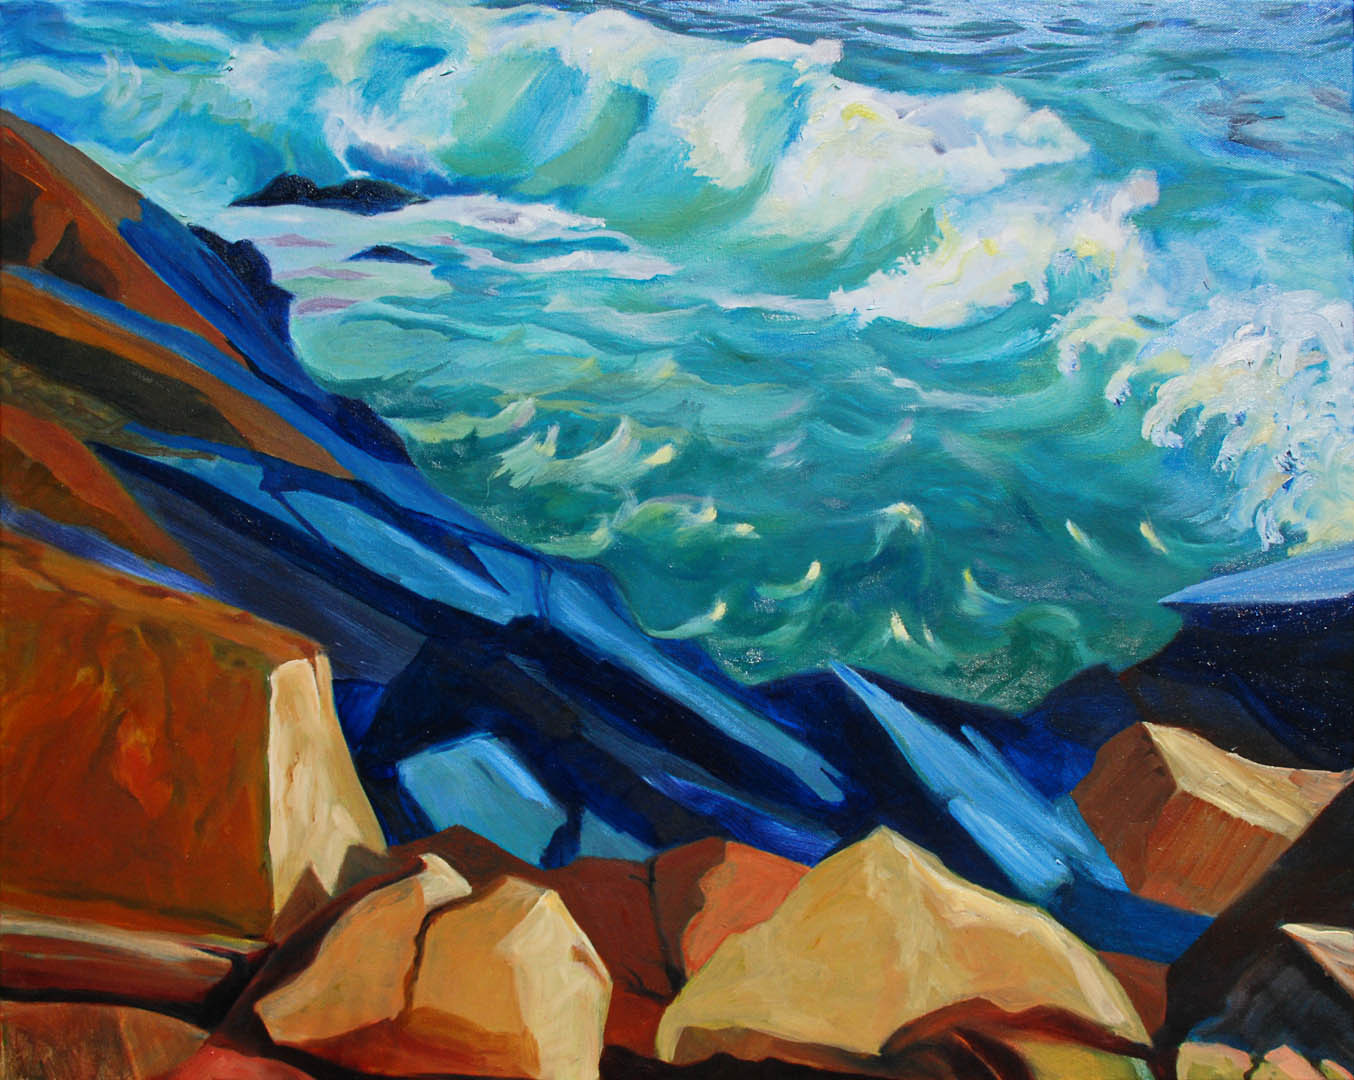 "04 Quoddy Coast, Oil on canvas 24 x 30"", $2600"